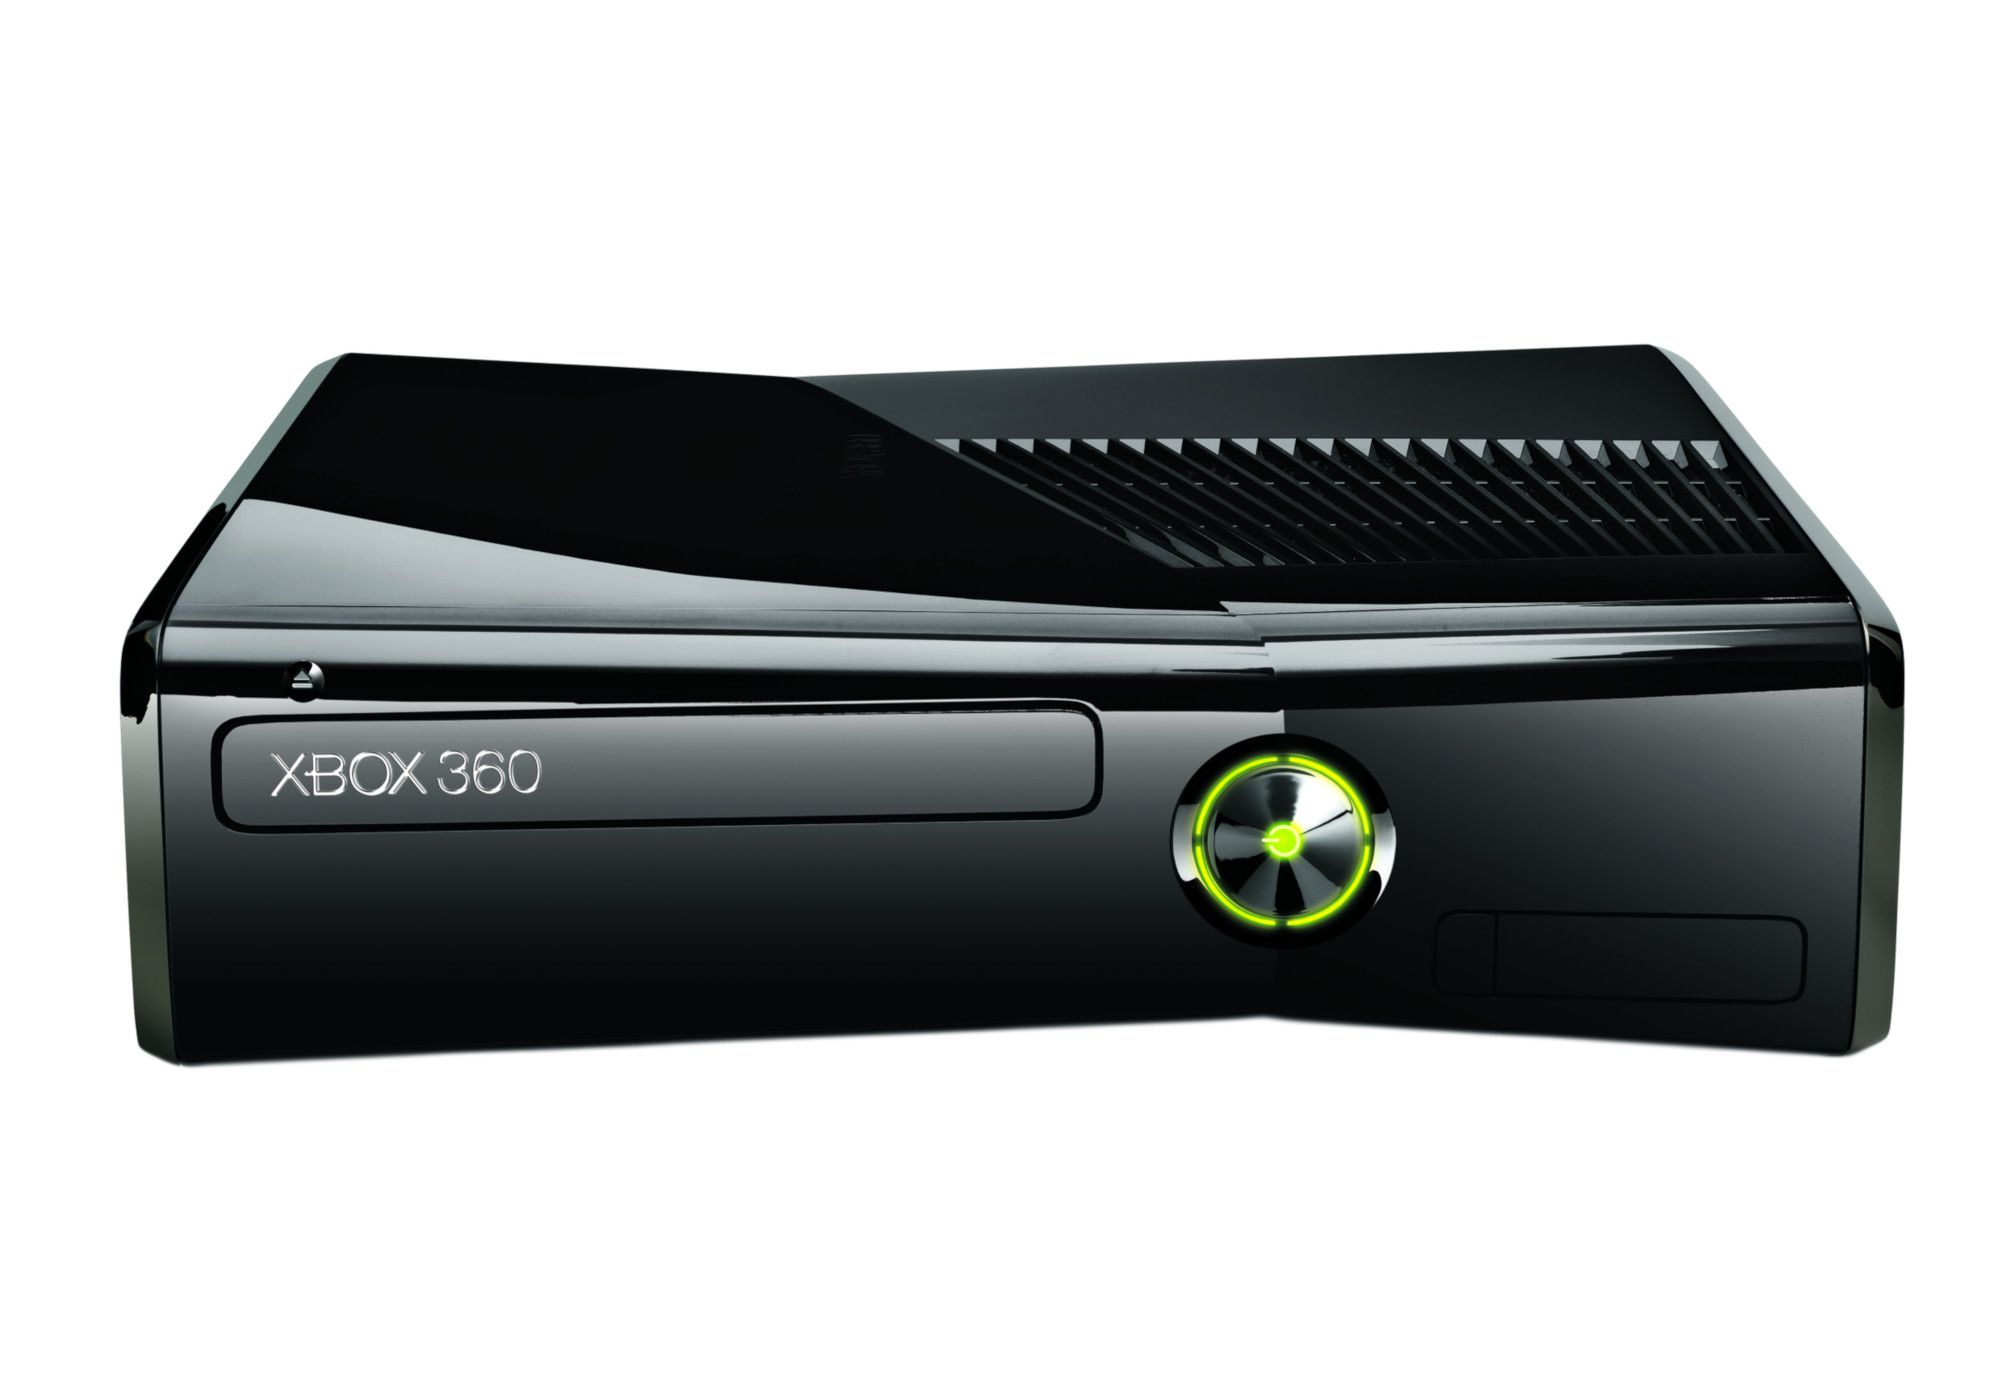 Xbox 360 Wireless Network Connection Problems and Fixes